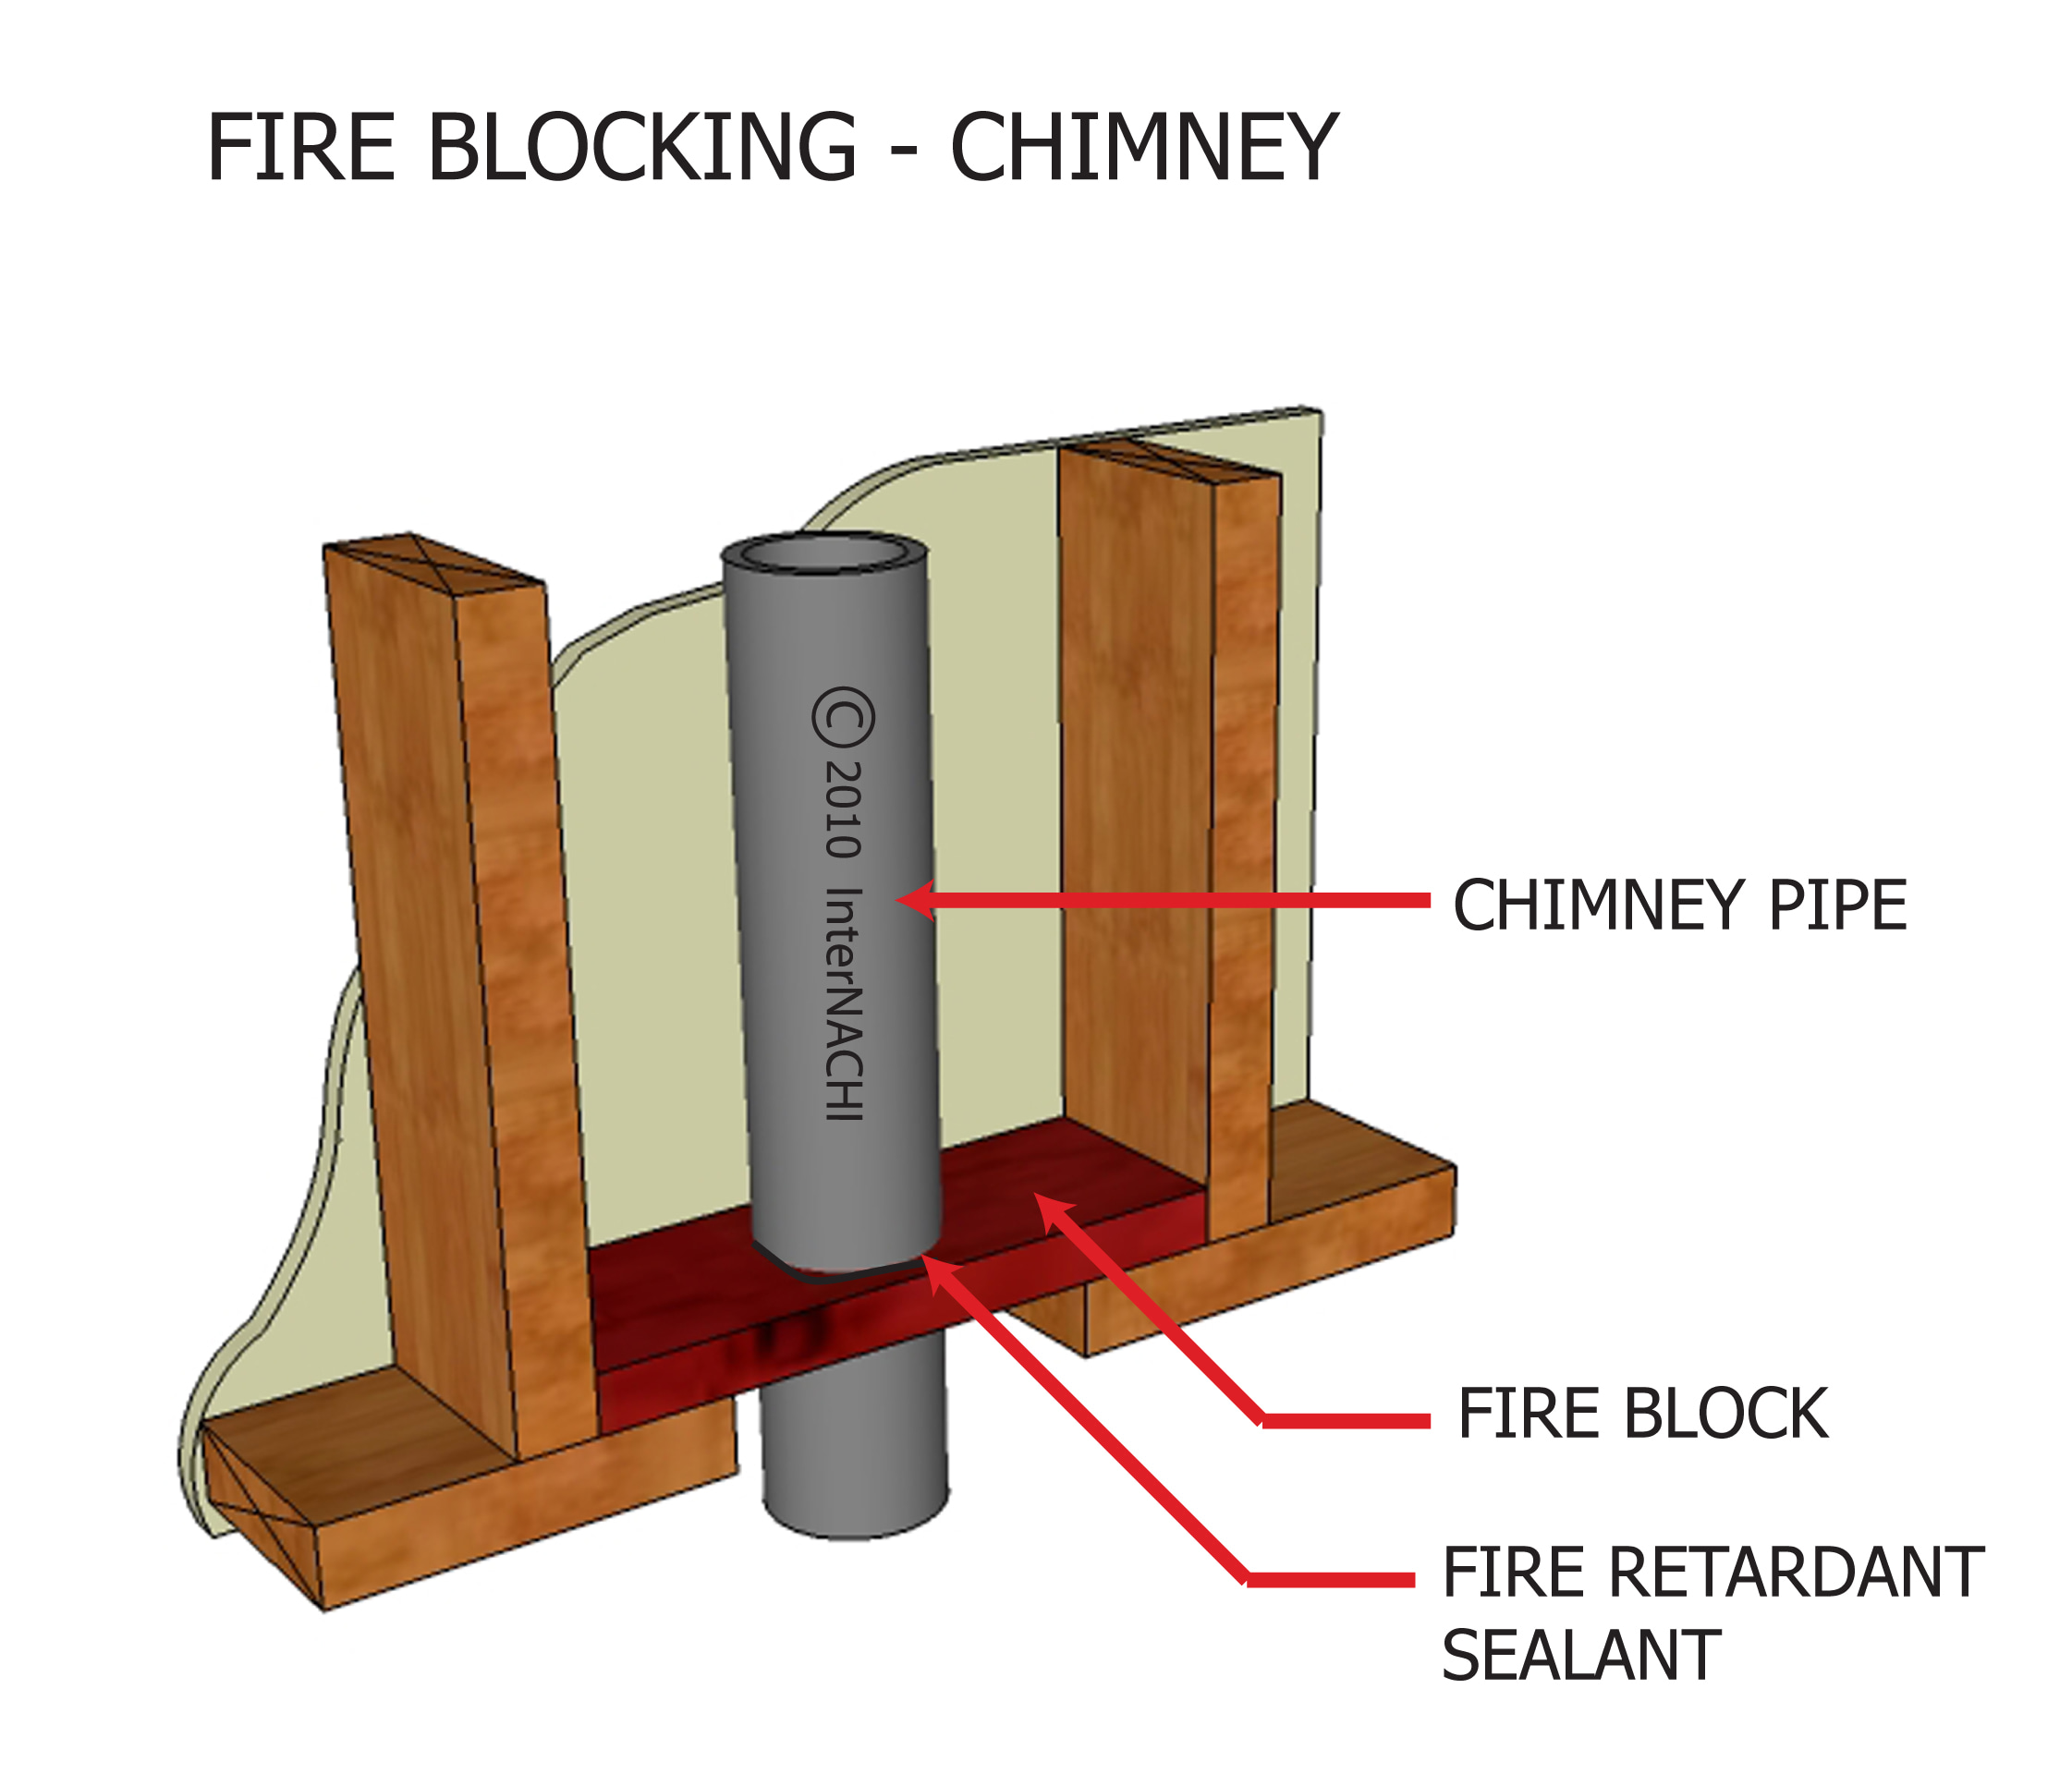 Fire blocking - chimney.